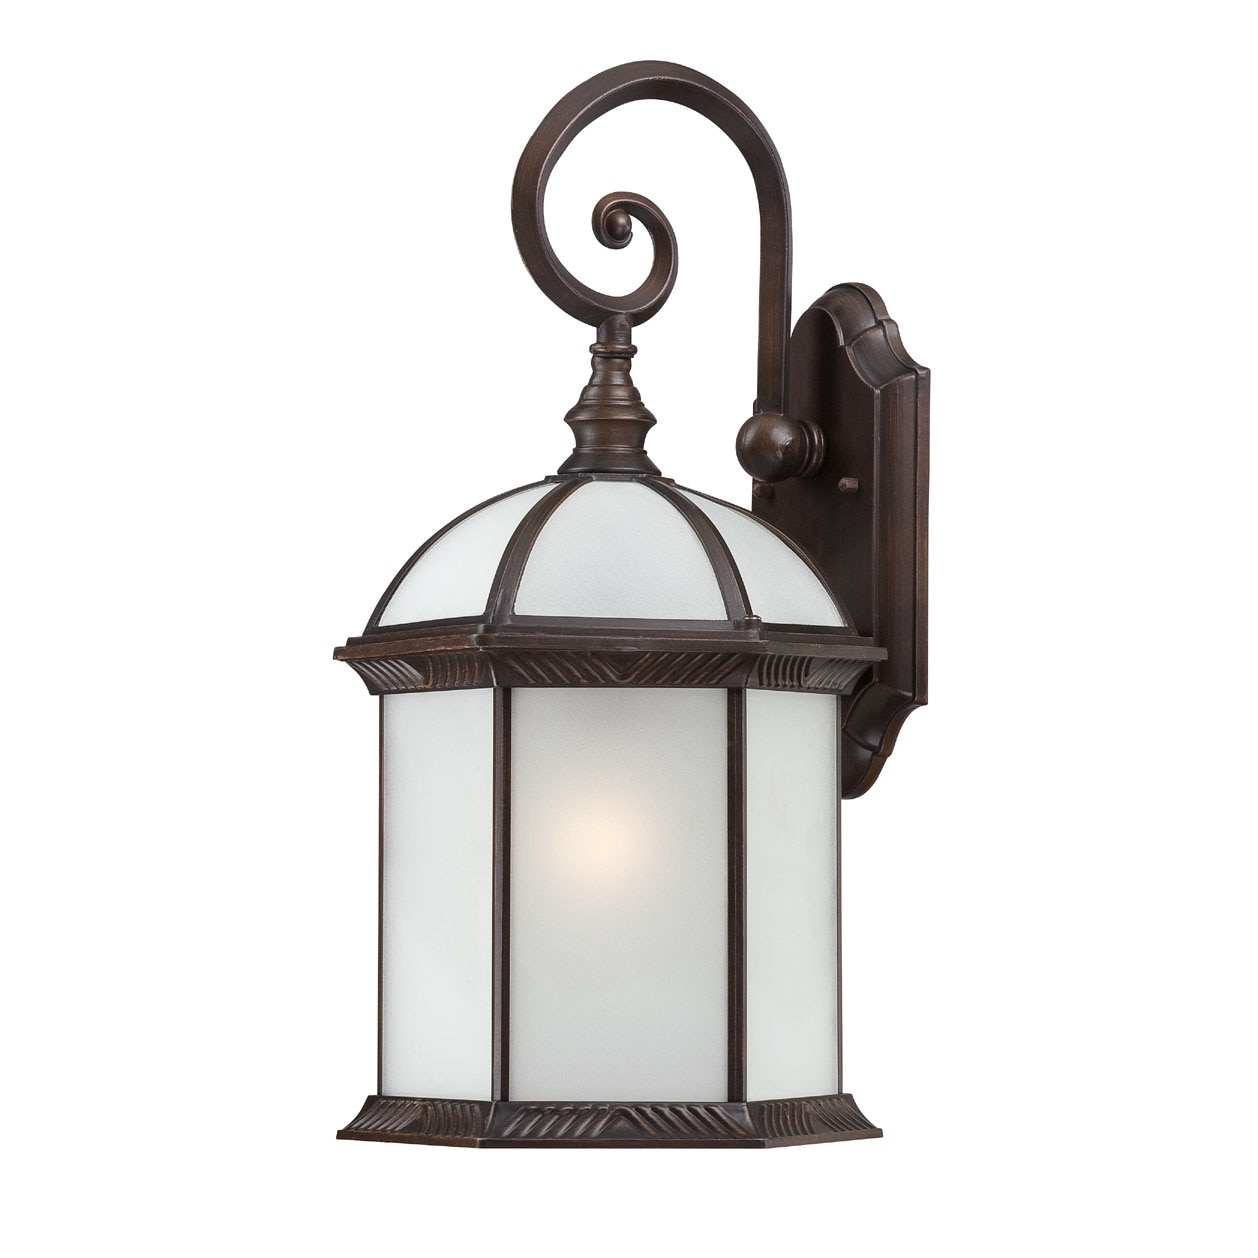 Nuvo Boxwood 1-Light Rustic Bronze Frosted Glass 19-Inch Wall Sconce